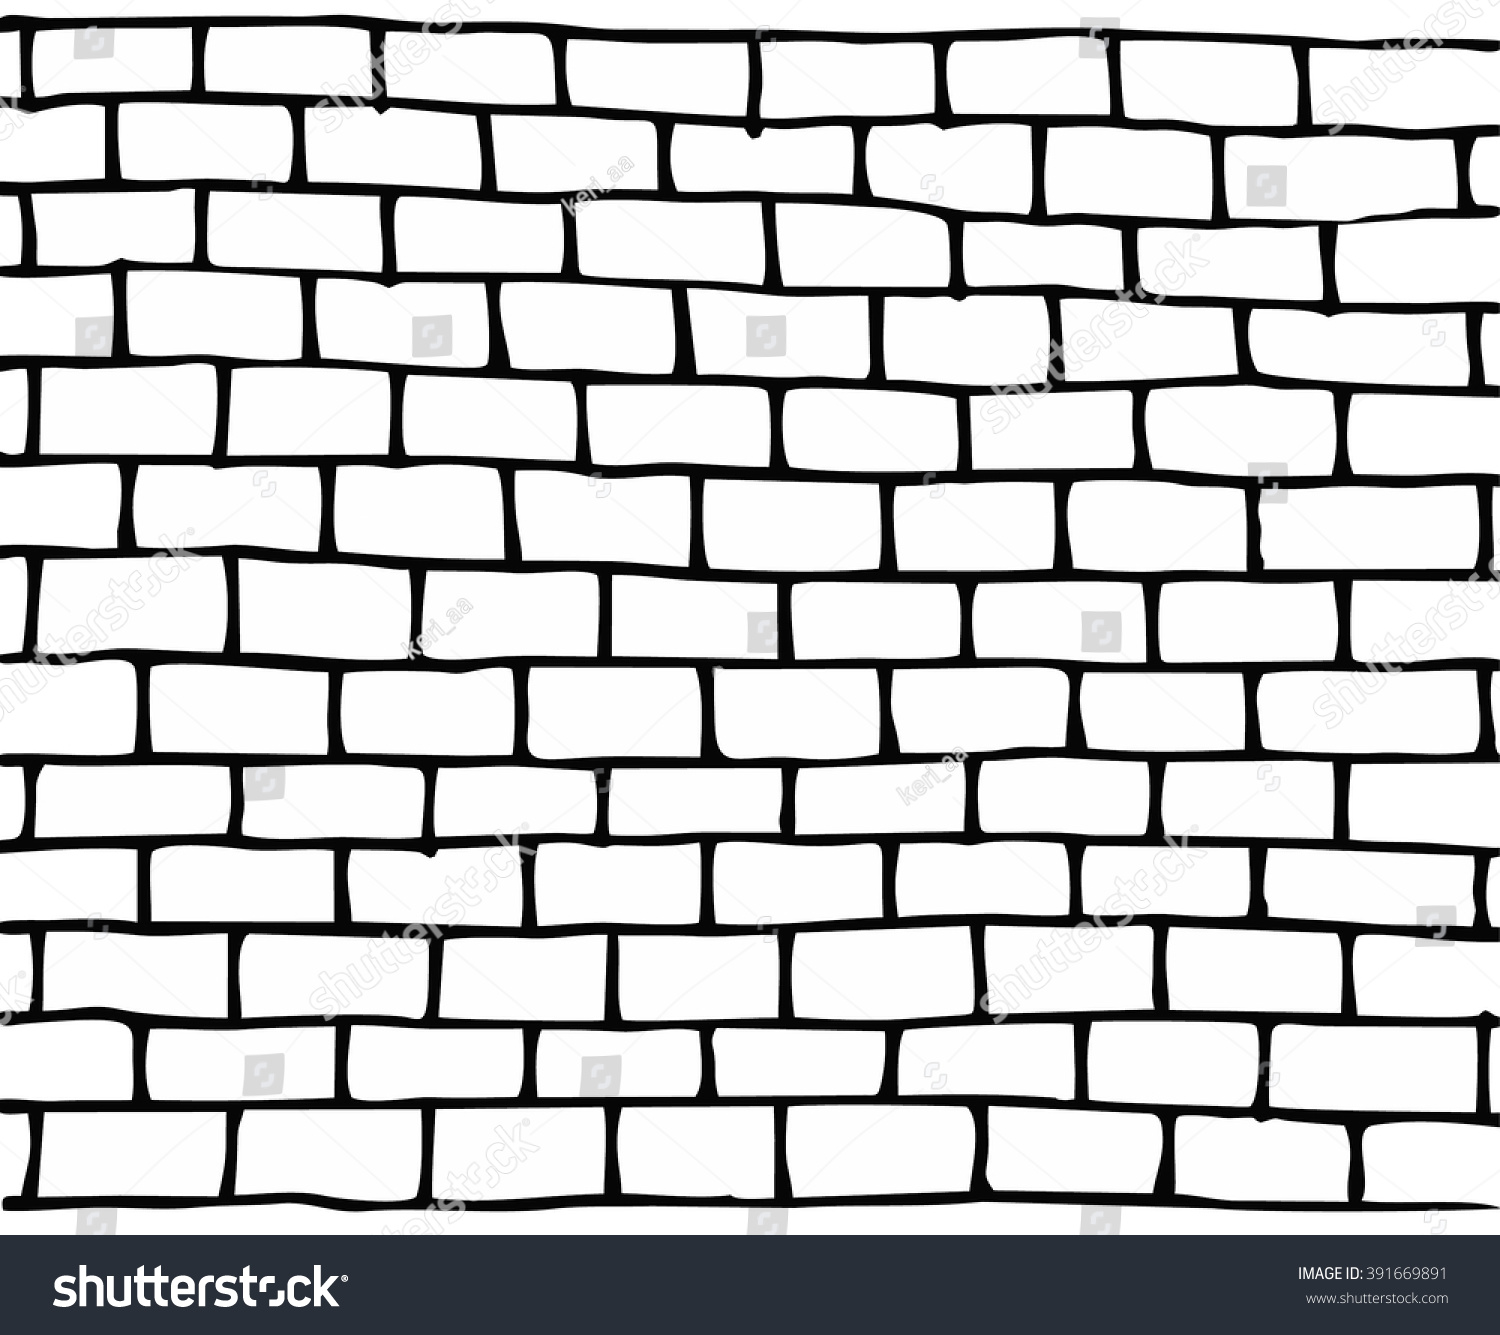 Template Doodle Brick Wall Vector Illustration Stock Vector (Royalty ...